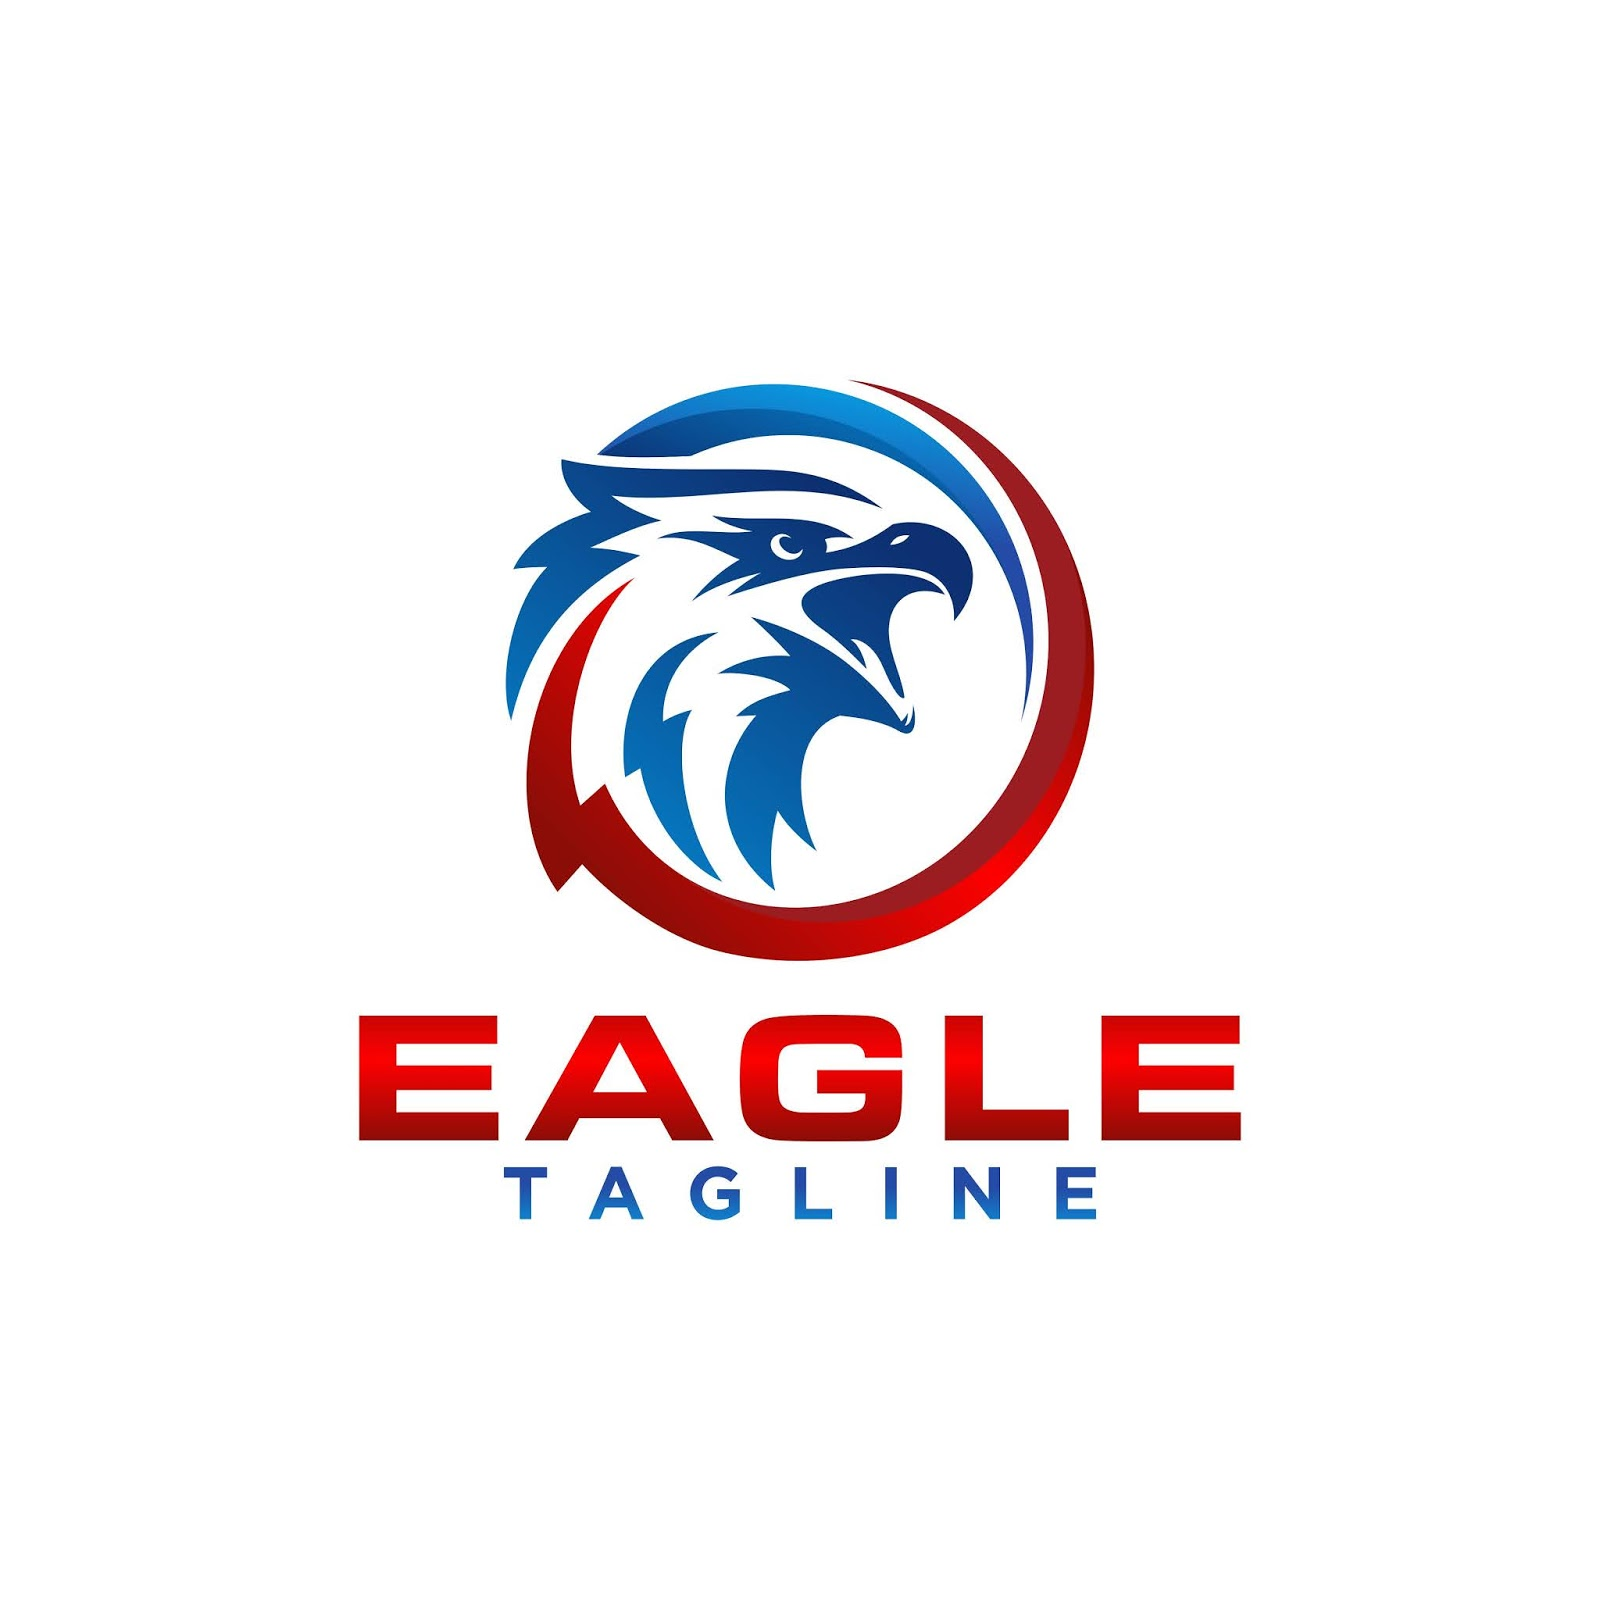 Creative Eagle Logo Stock Vector Free Download Vector CDR, AI, EPS and PNG Formats